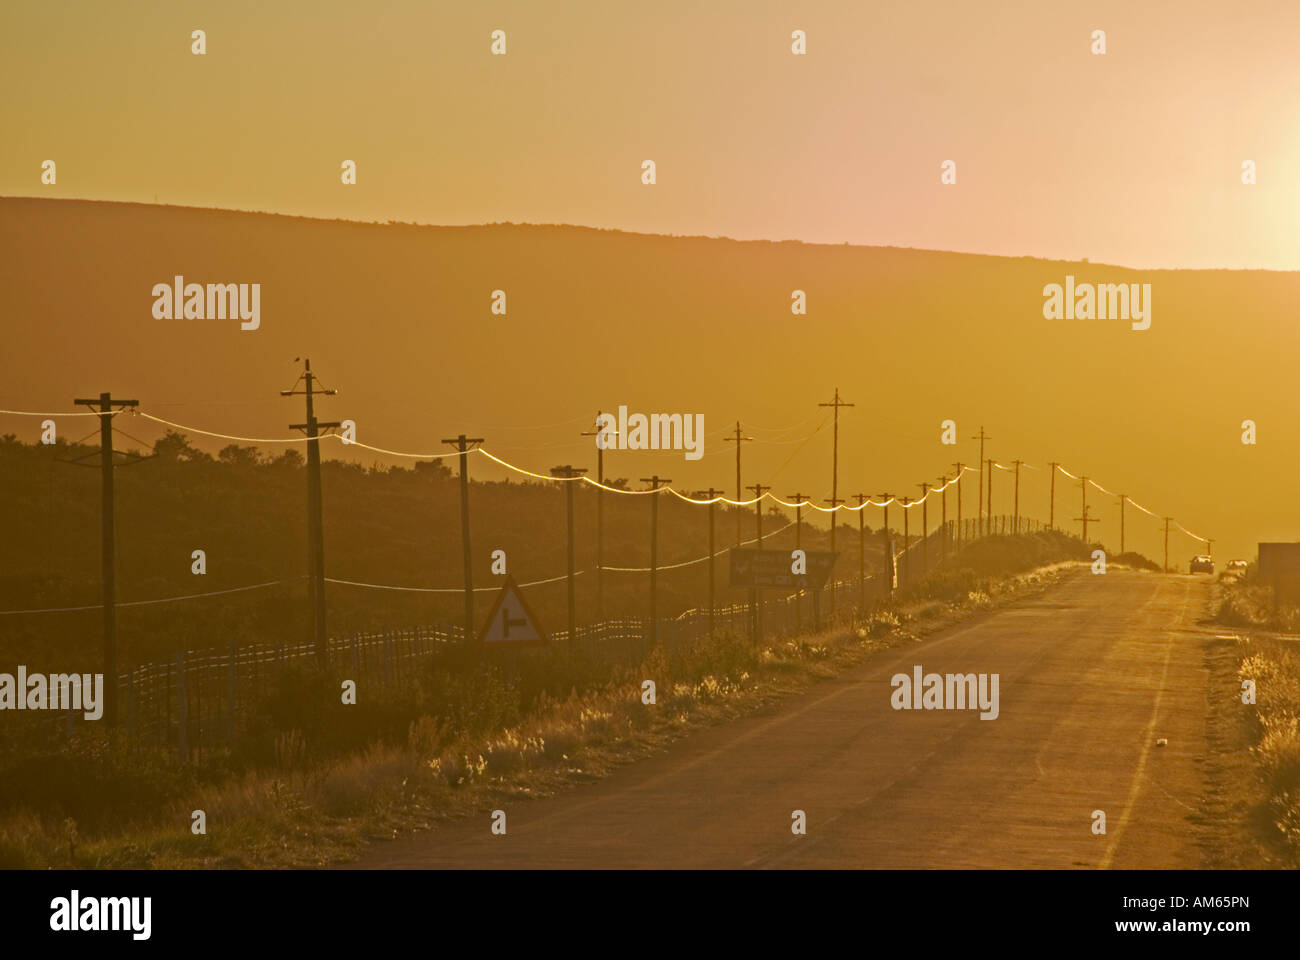 Telegrafenmasten Stock Photos & Telegrafenmasten Stock Images - Alamy